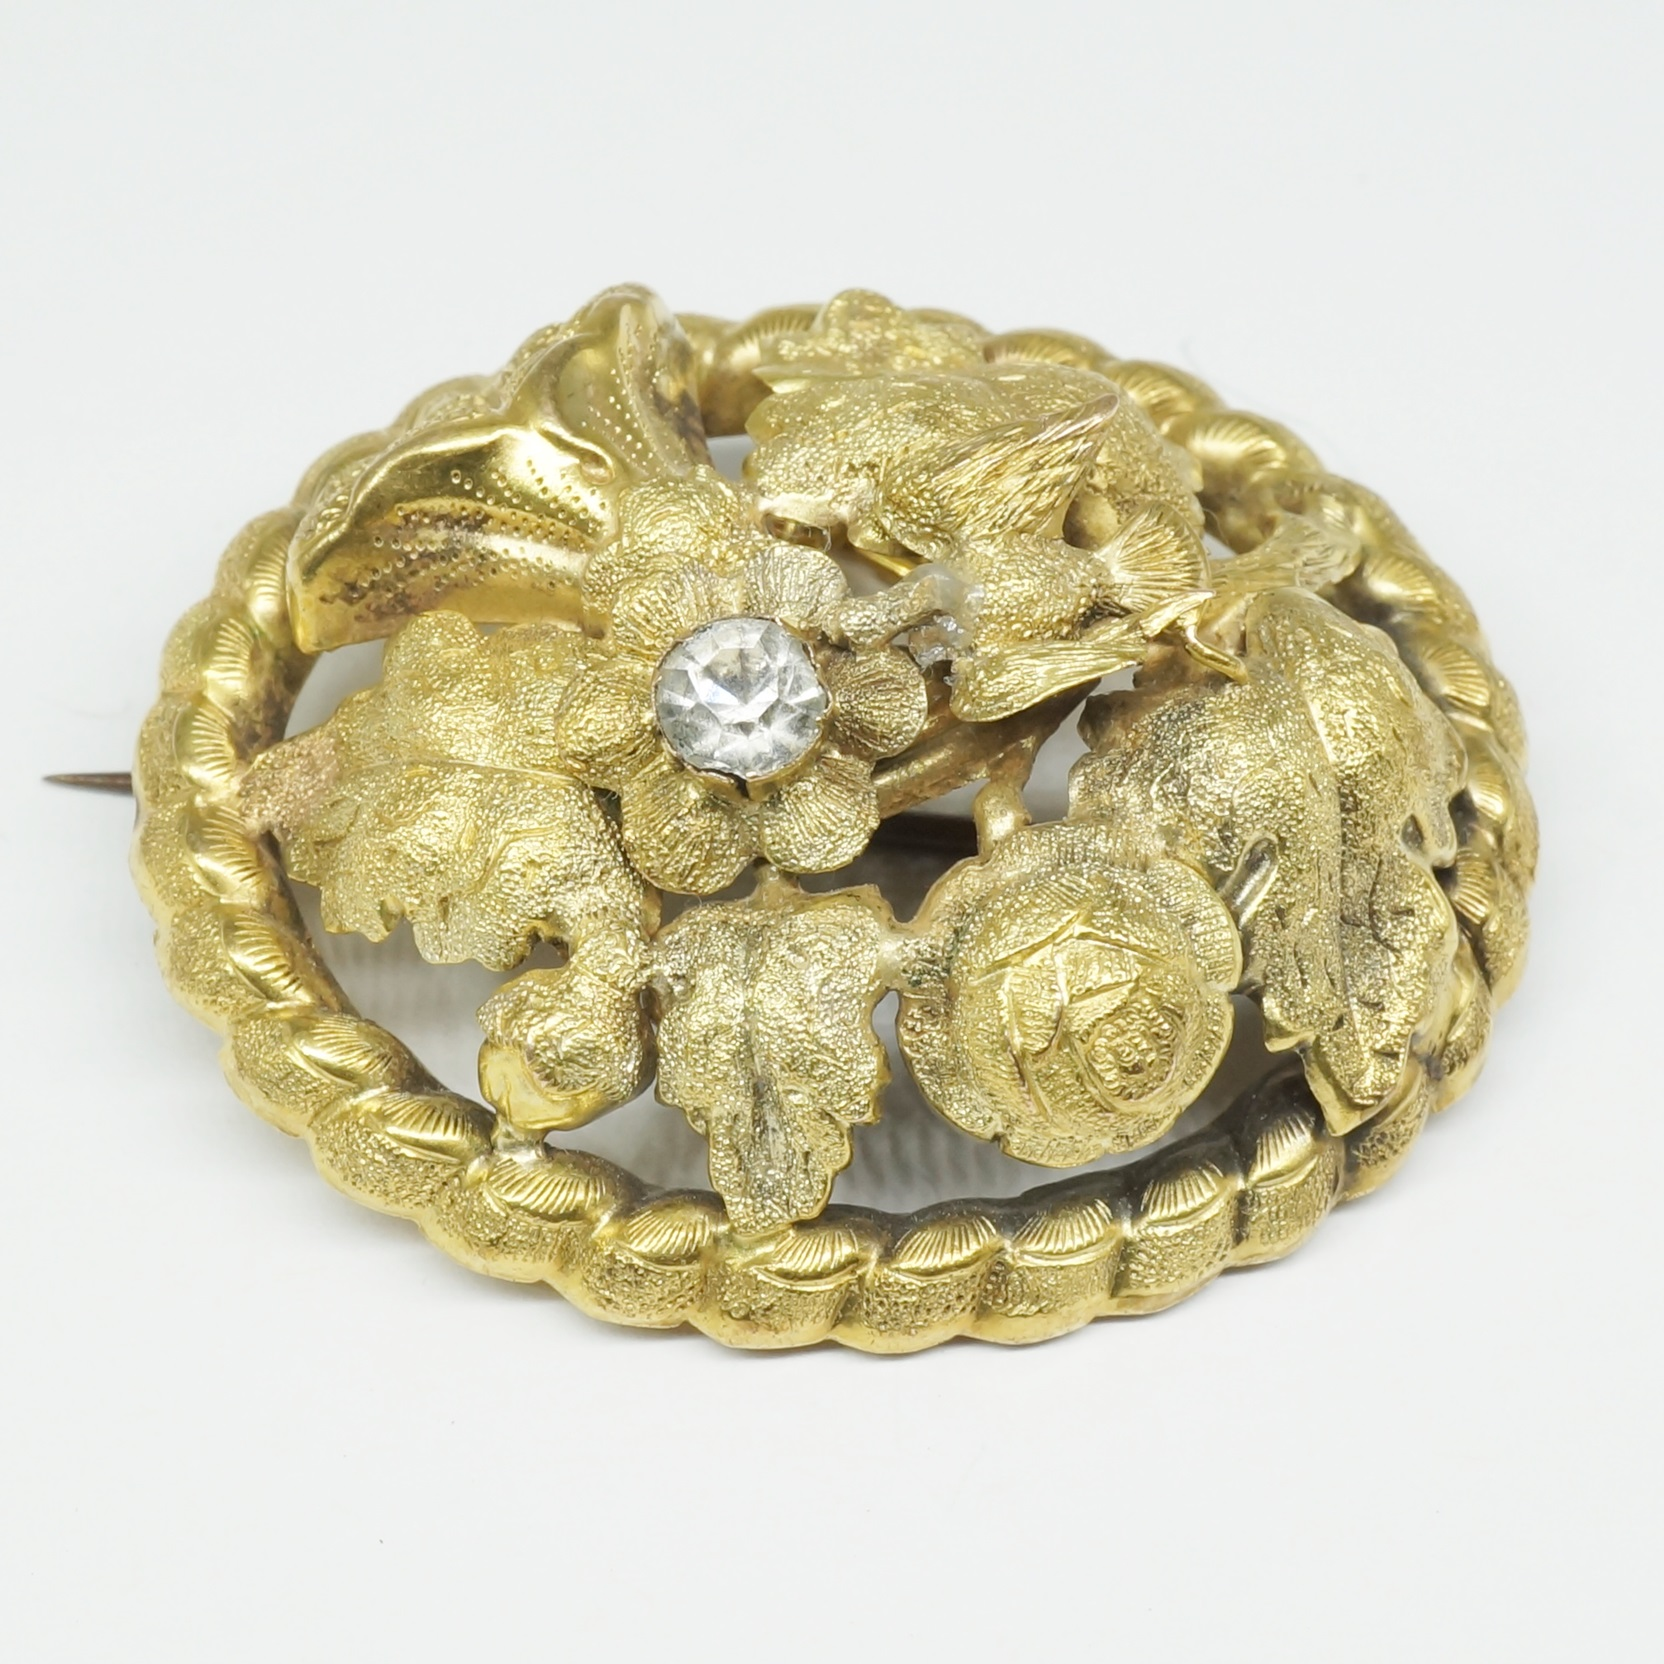 'Antique 9ct Yellow Gold Die Struck Brooch'